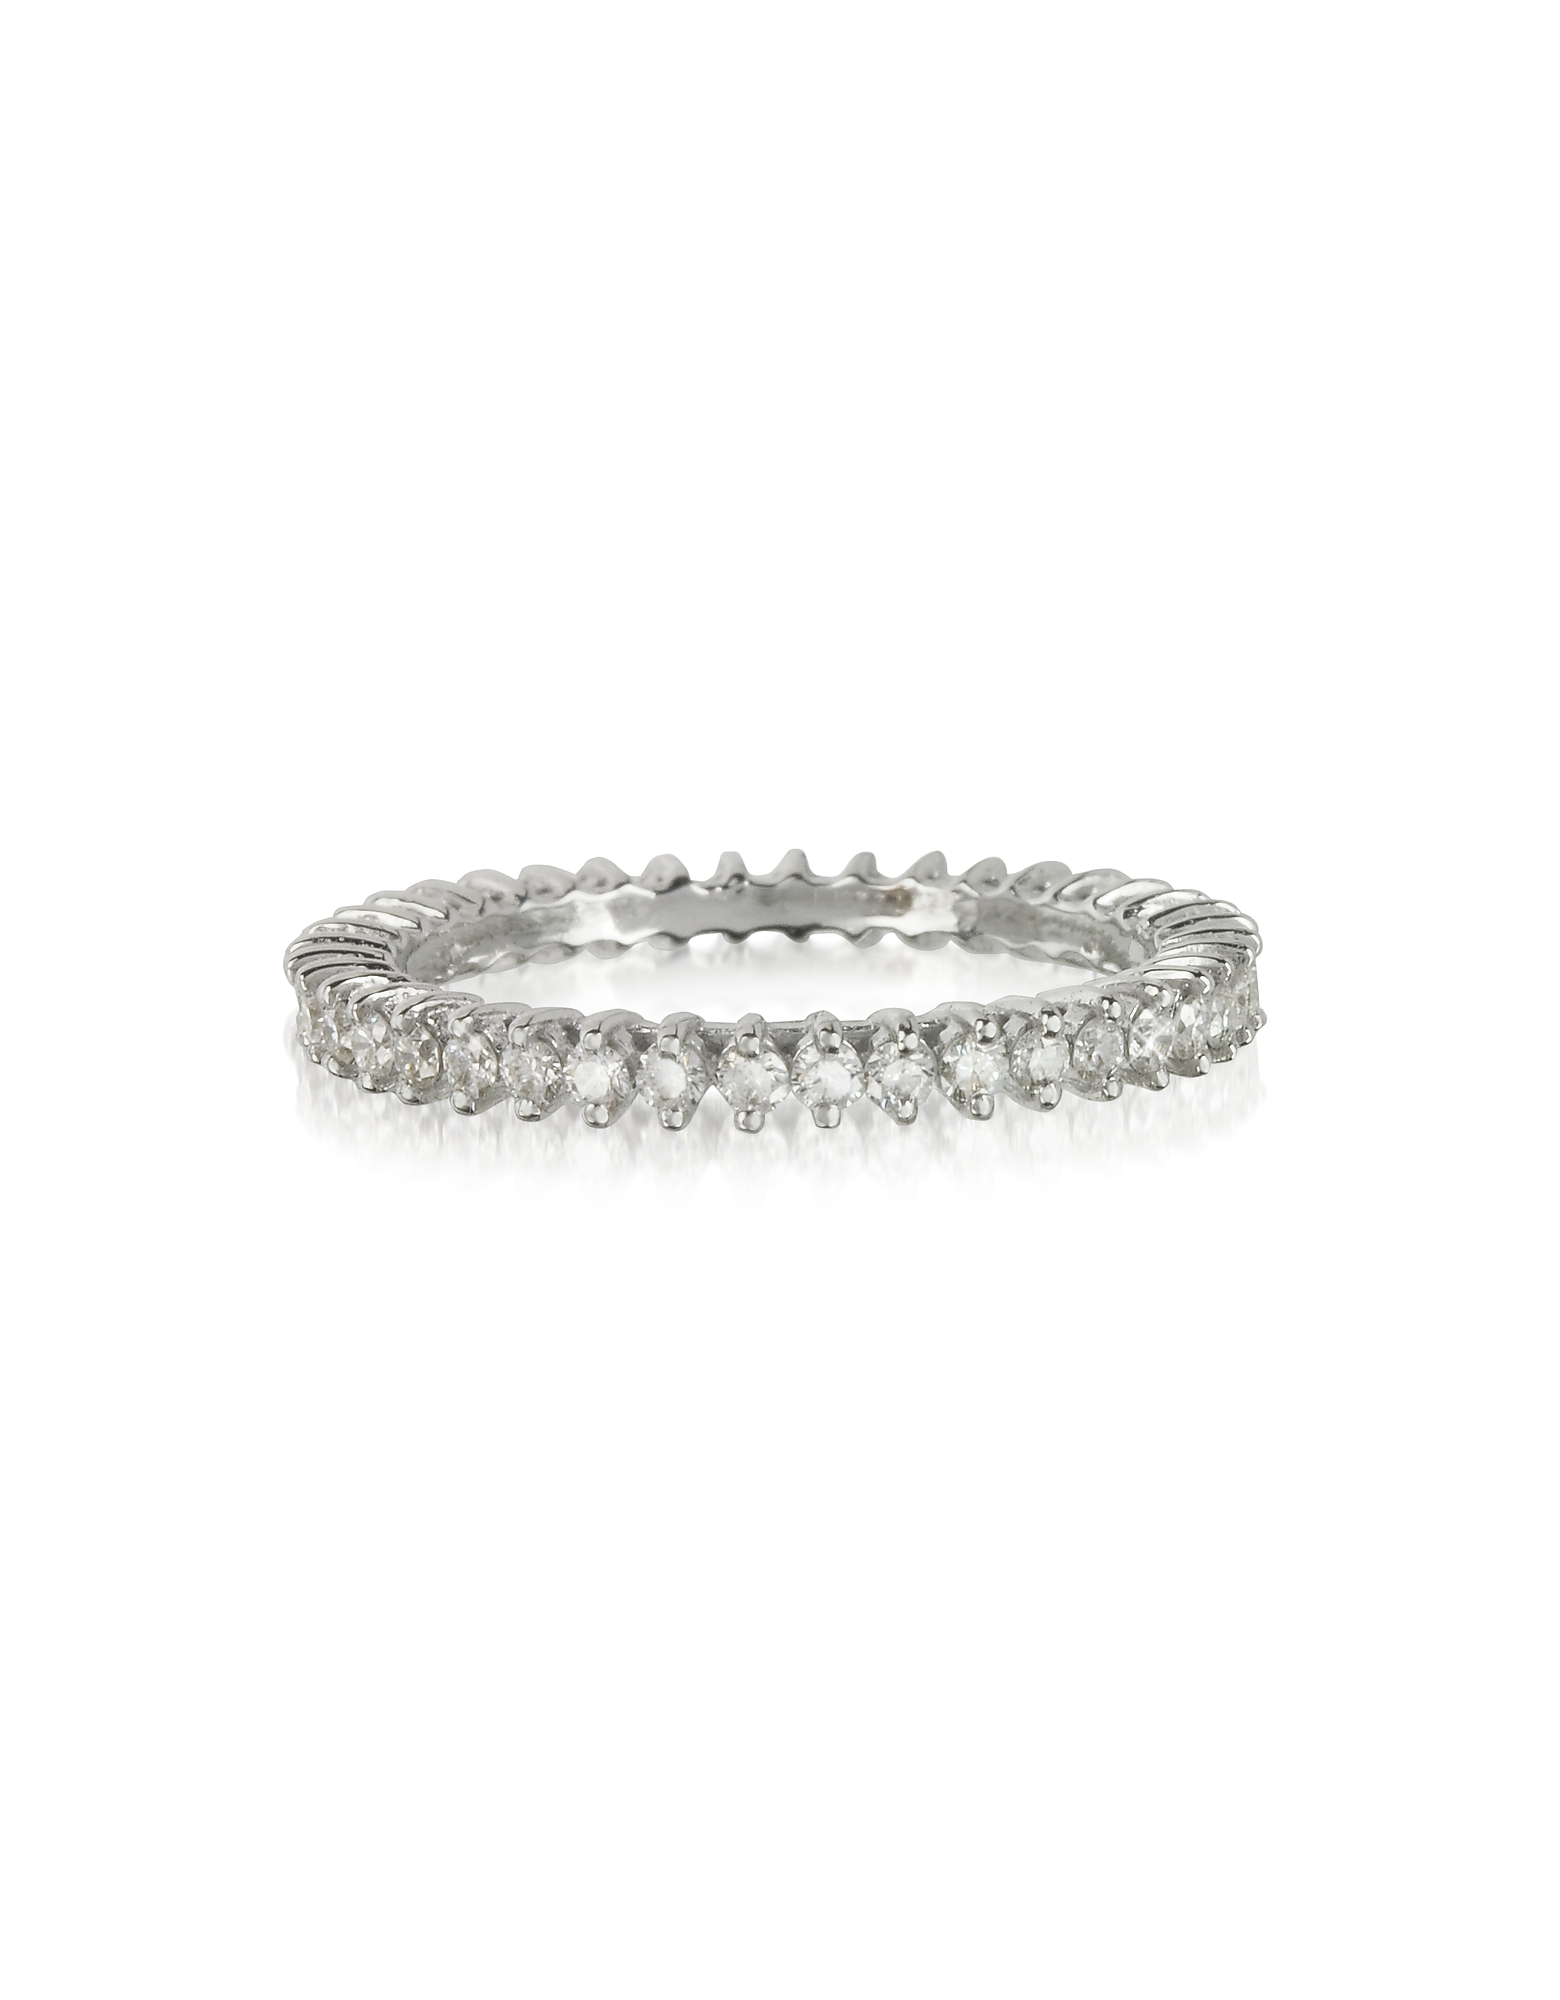 Forzieri Rings, White Gold and Diamonds Eternity Band Ring